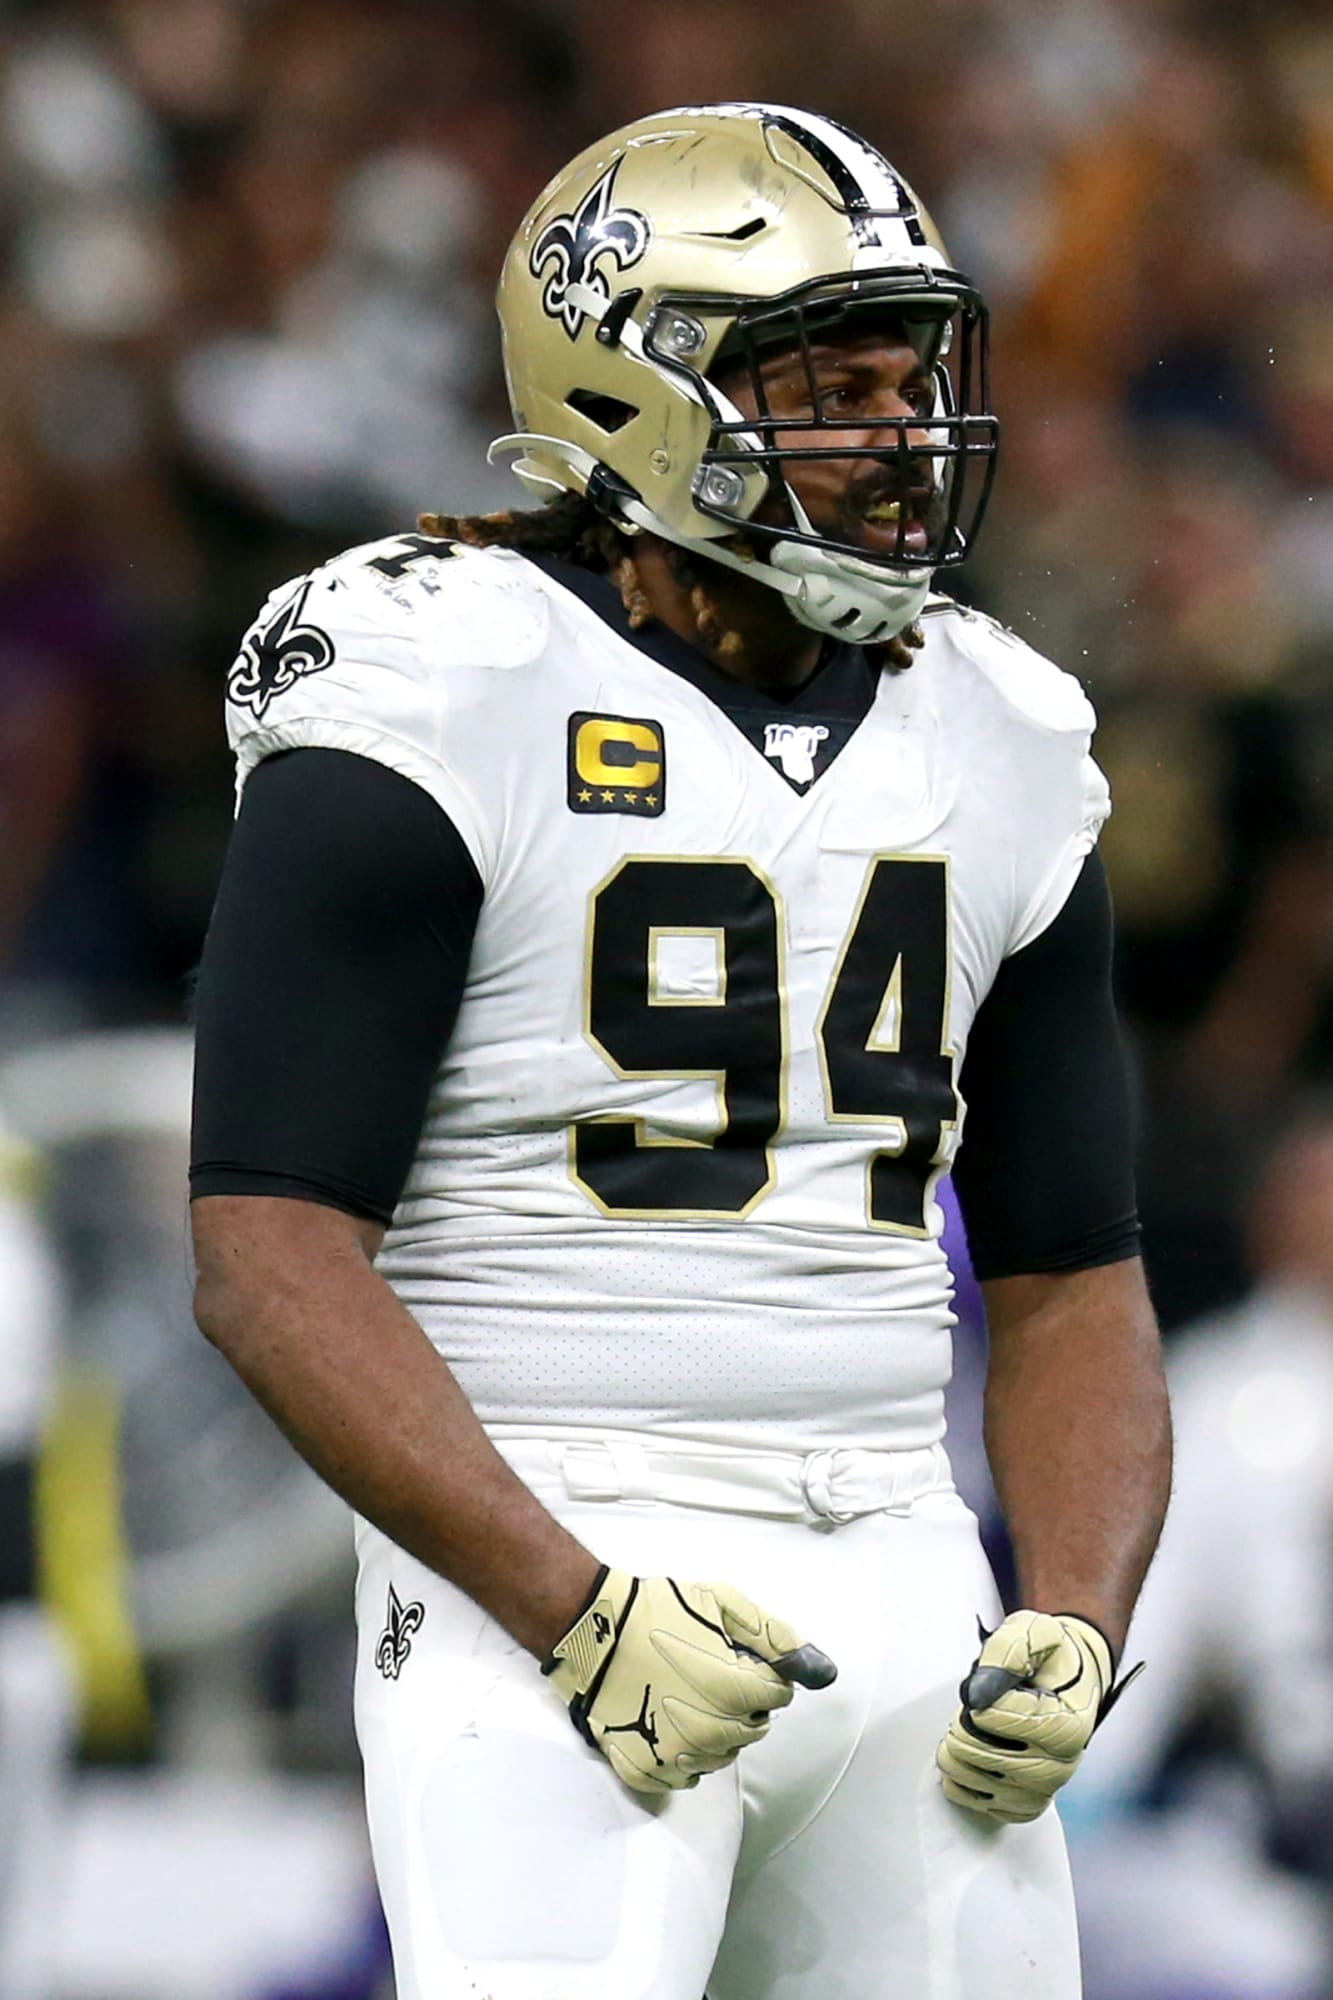 Saints: Ranking the top pass rushers in the NFC South